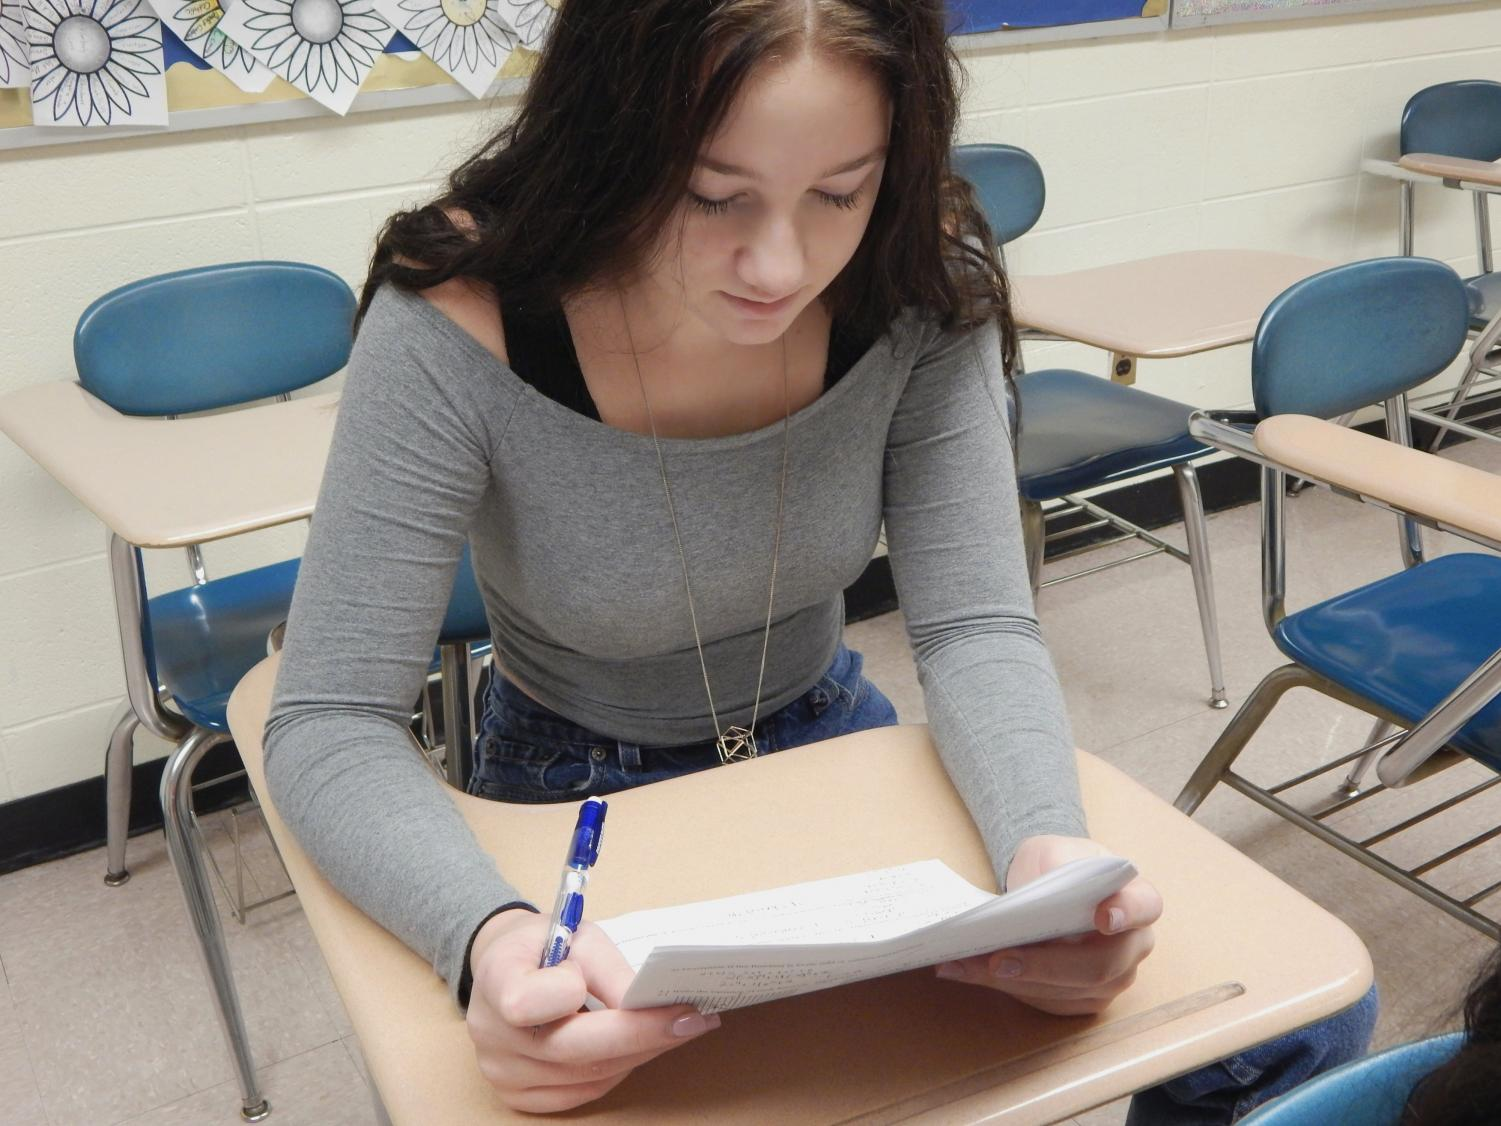 People who suffer from test anxiety are more likely to check their tests multiple times before turning them in.